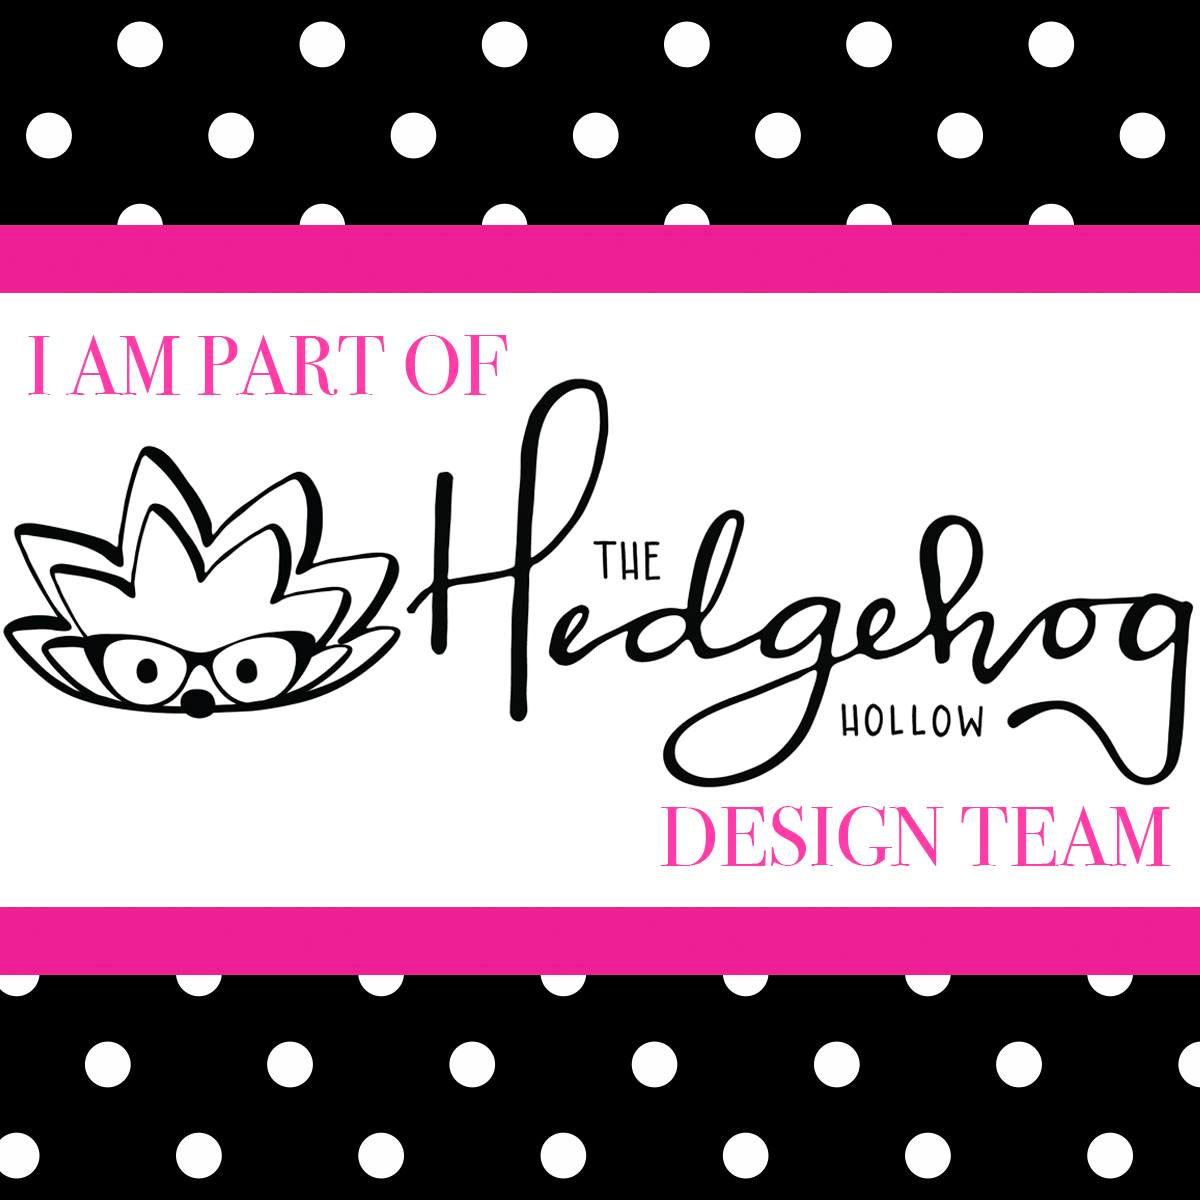 The Hedgehog Hollow Design Team